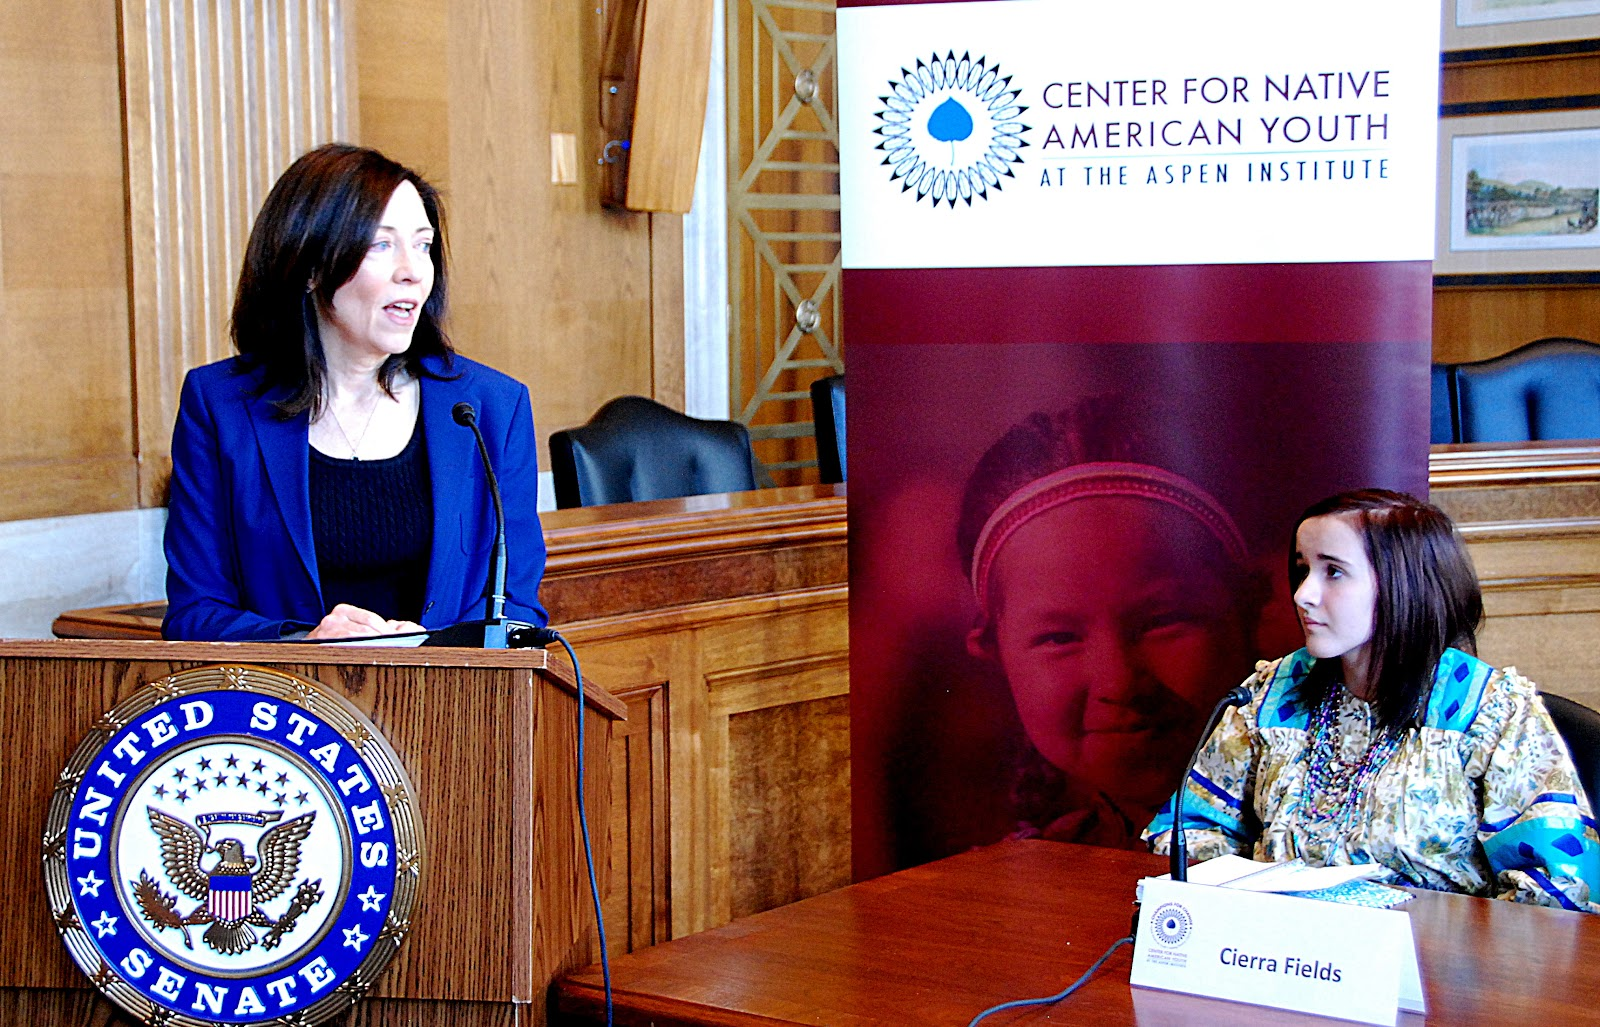 Senator Maria Cantwell (left) and Champion for Change Cierra Fields (right) - Photo: Vincent Schilling